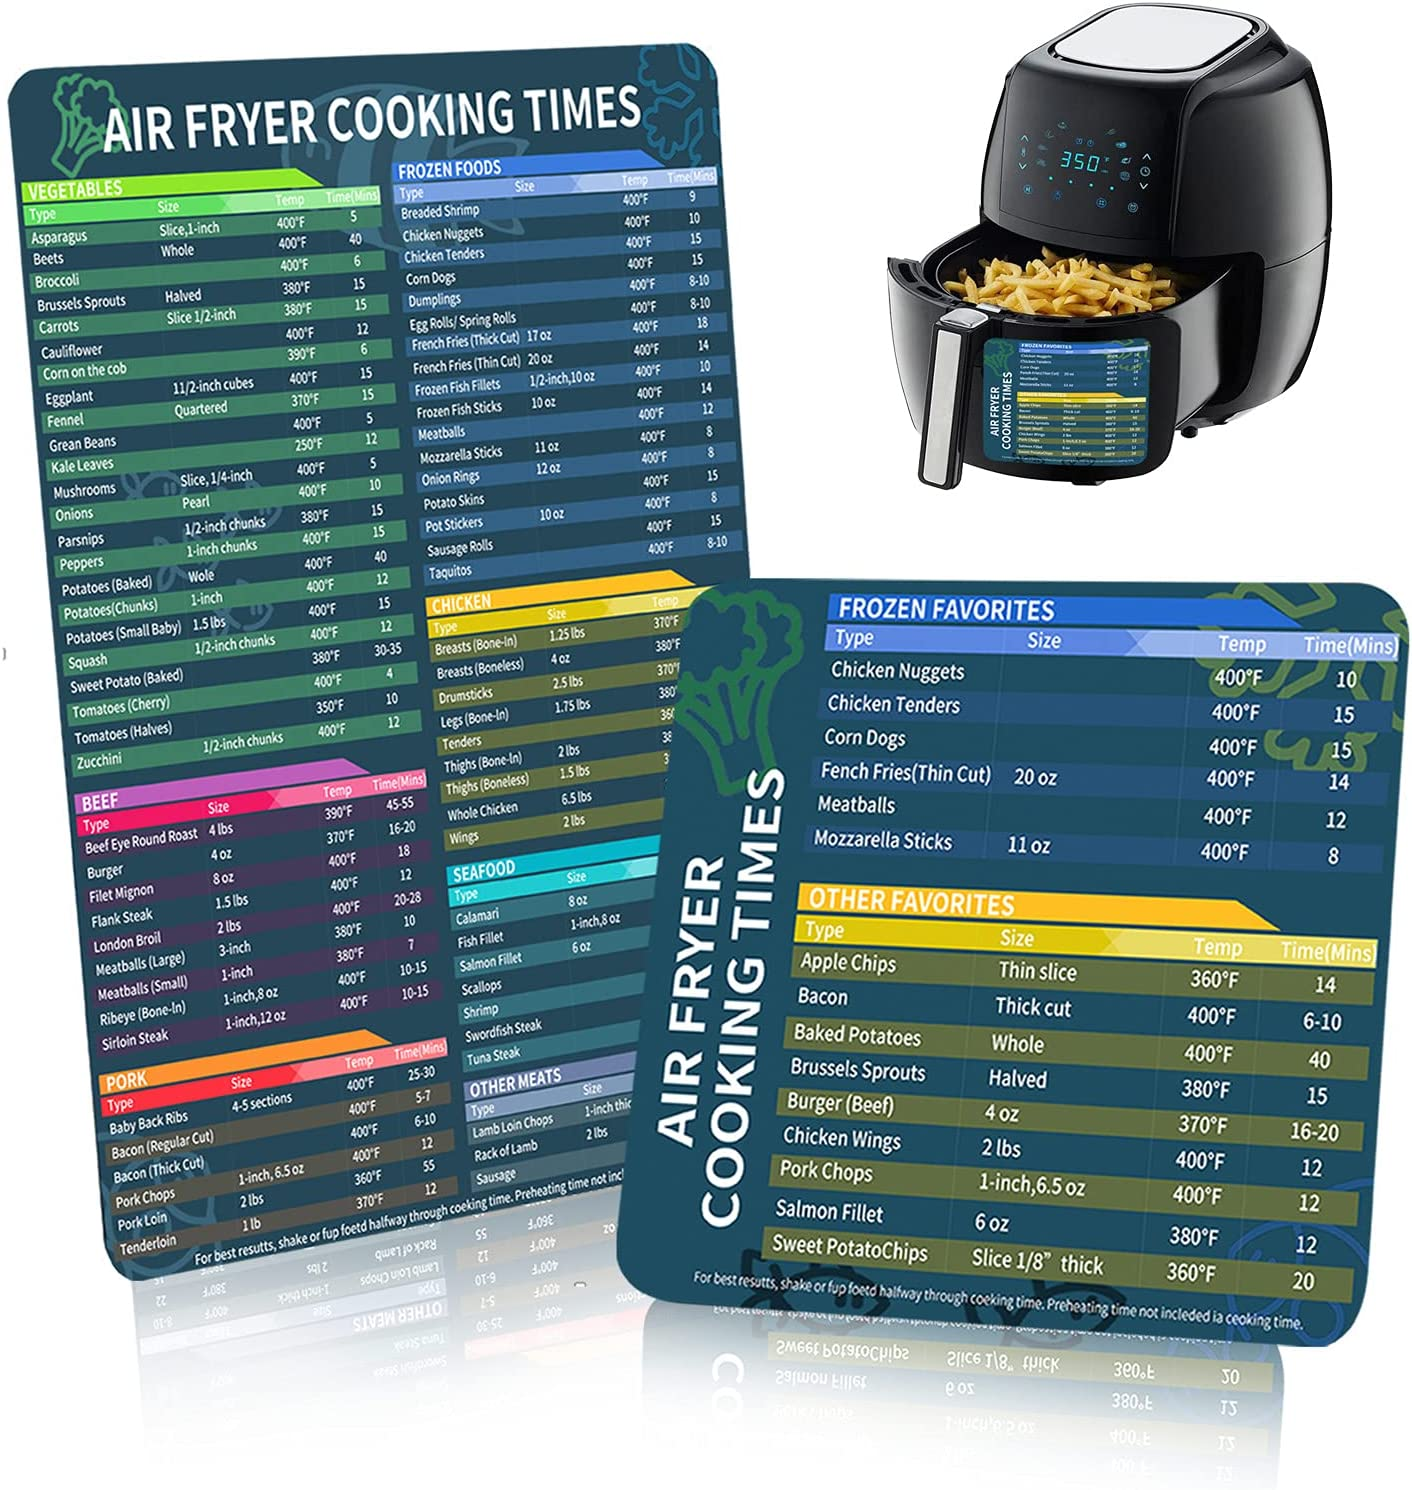 Air Fryer Magnetic Cheat Sheet Set, Air Fryer Accessories included Big Magnet and Small Magnet Cooking Times Chart, Air fryer Magnet Sheet Quick Reference Guide for Cooking and Frying (2 Pack)